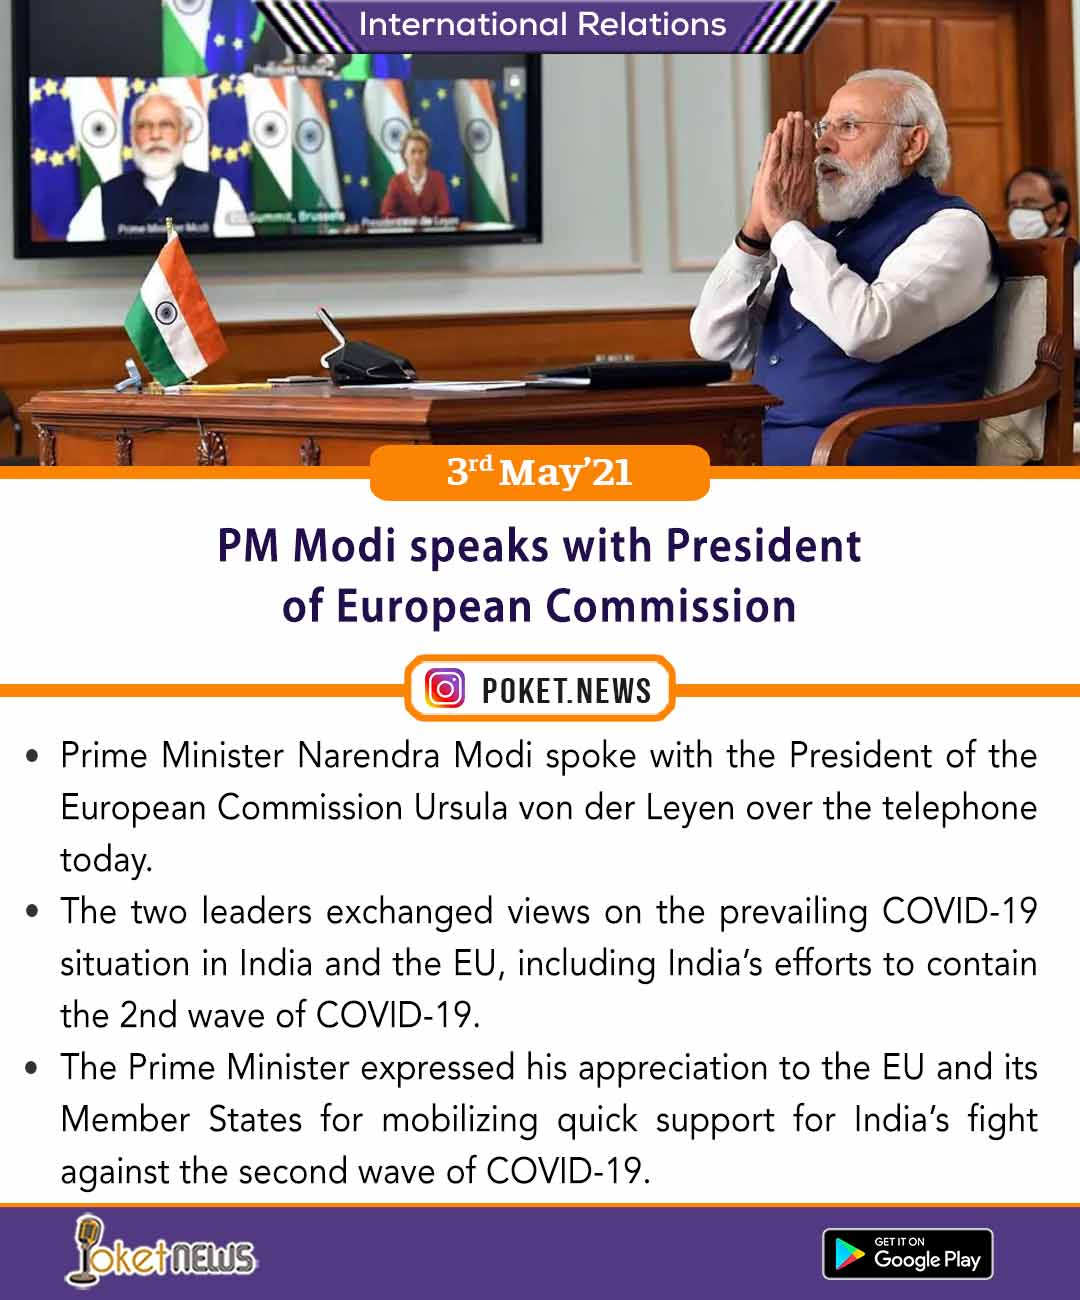 PM Modi speaks with President of European Commission